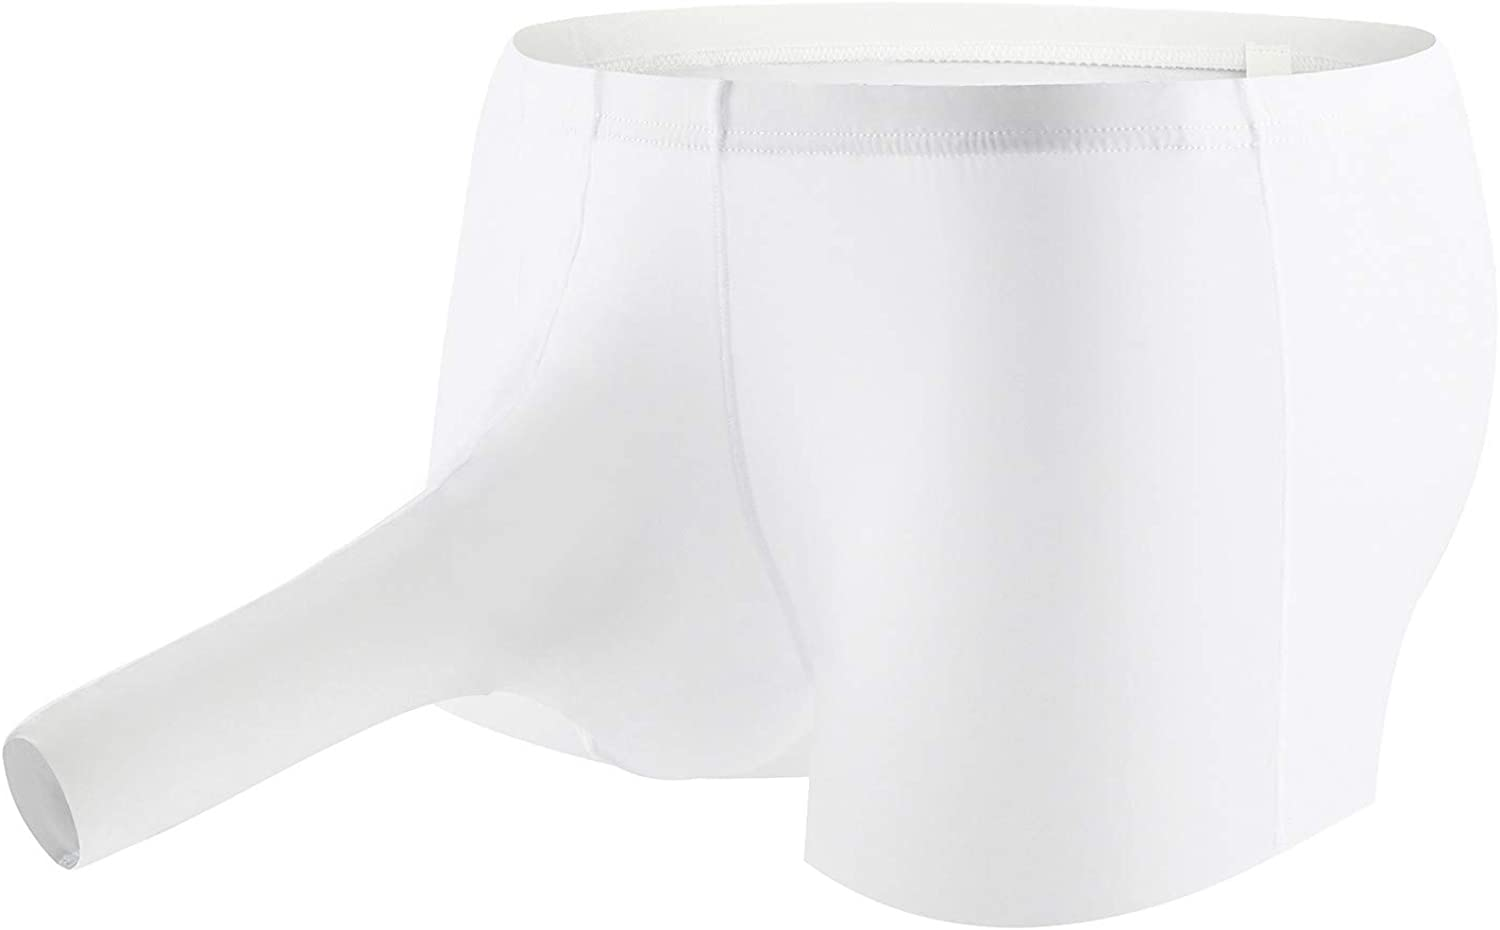 Men's Sexy Underwear Briefs with Sheath Nylon Soft Elephant Thongs T Back G-Strings Triangle Underpants (White- A, XXL)